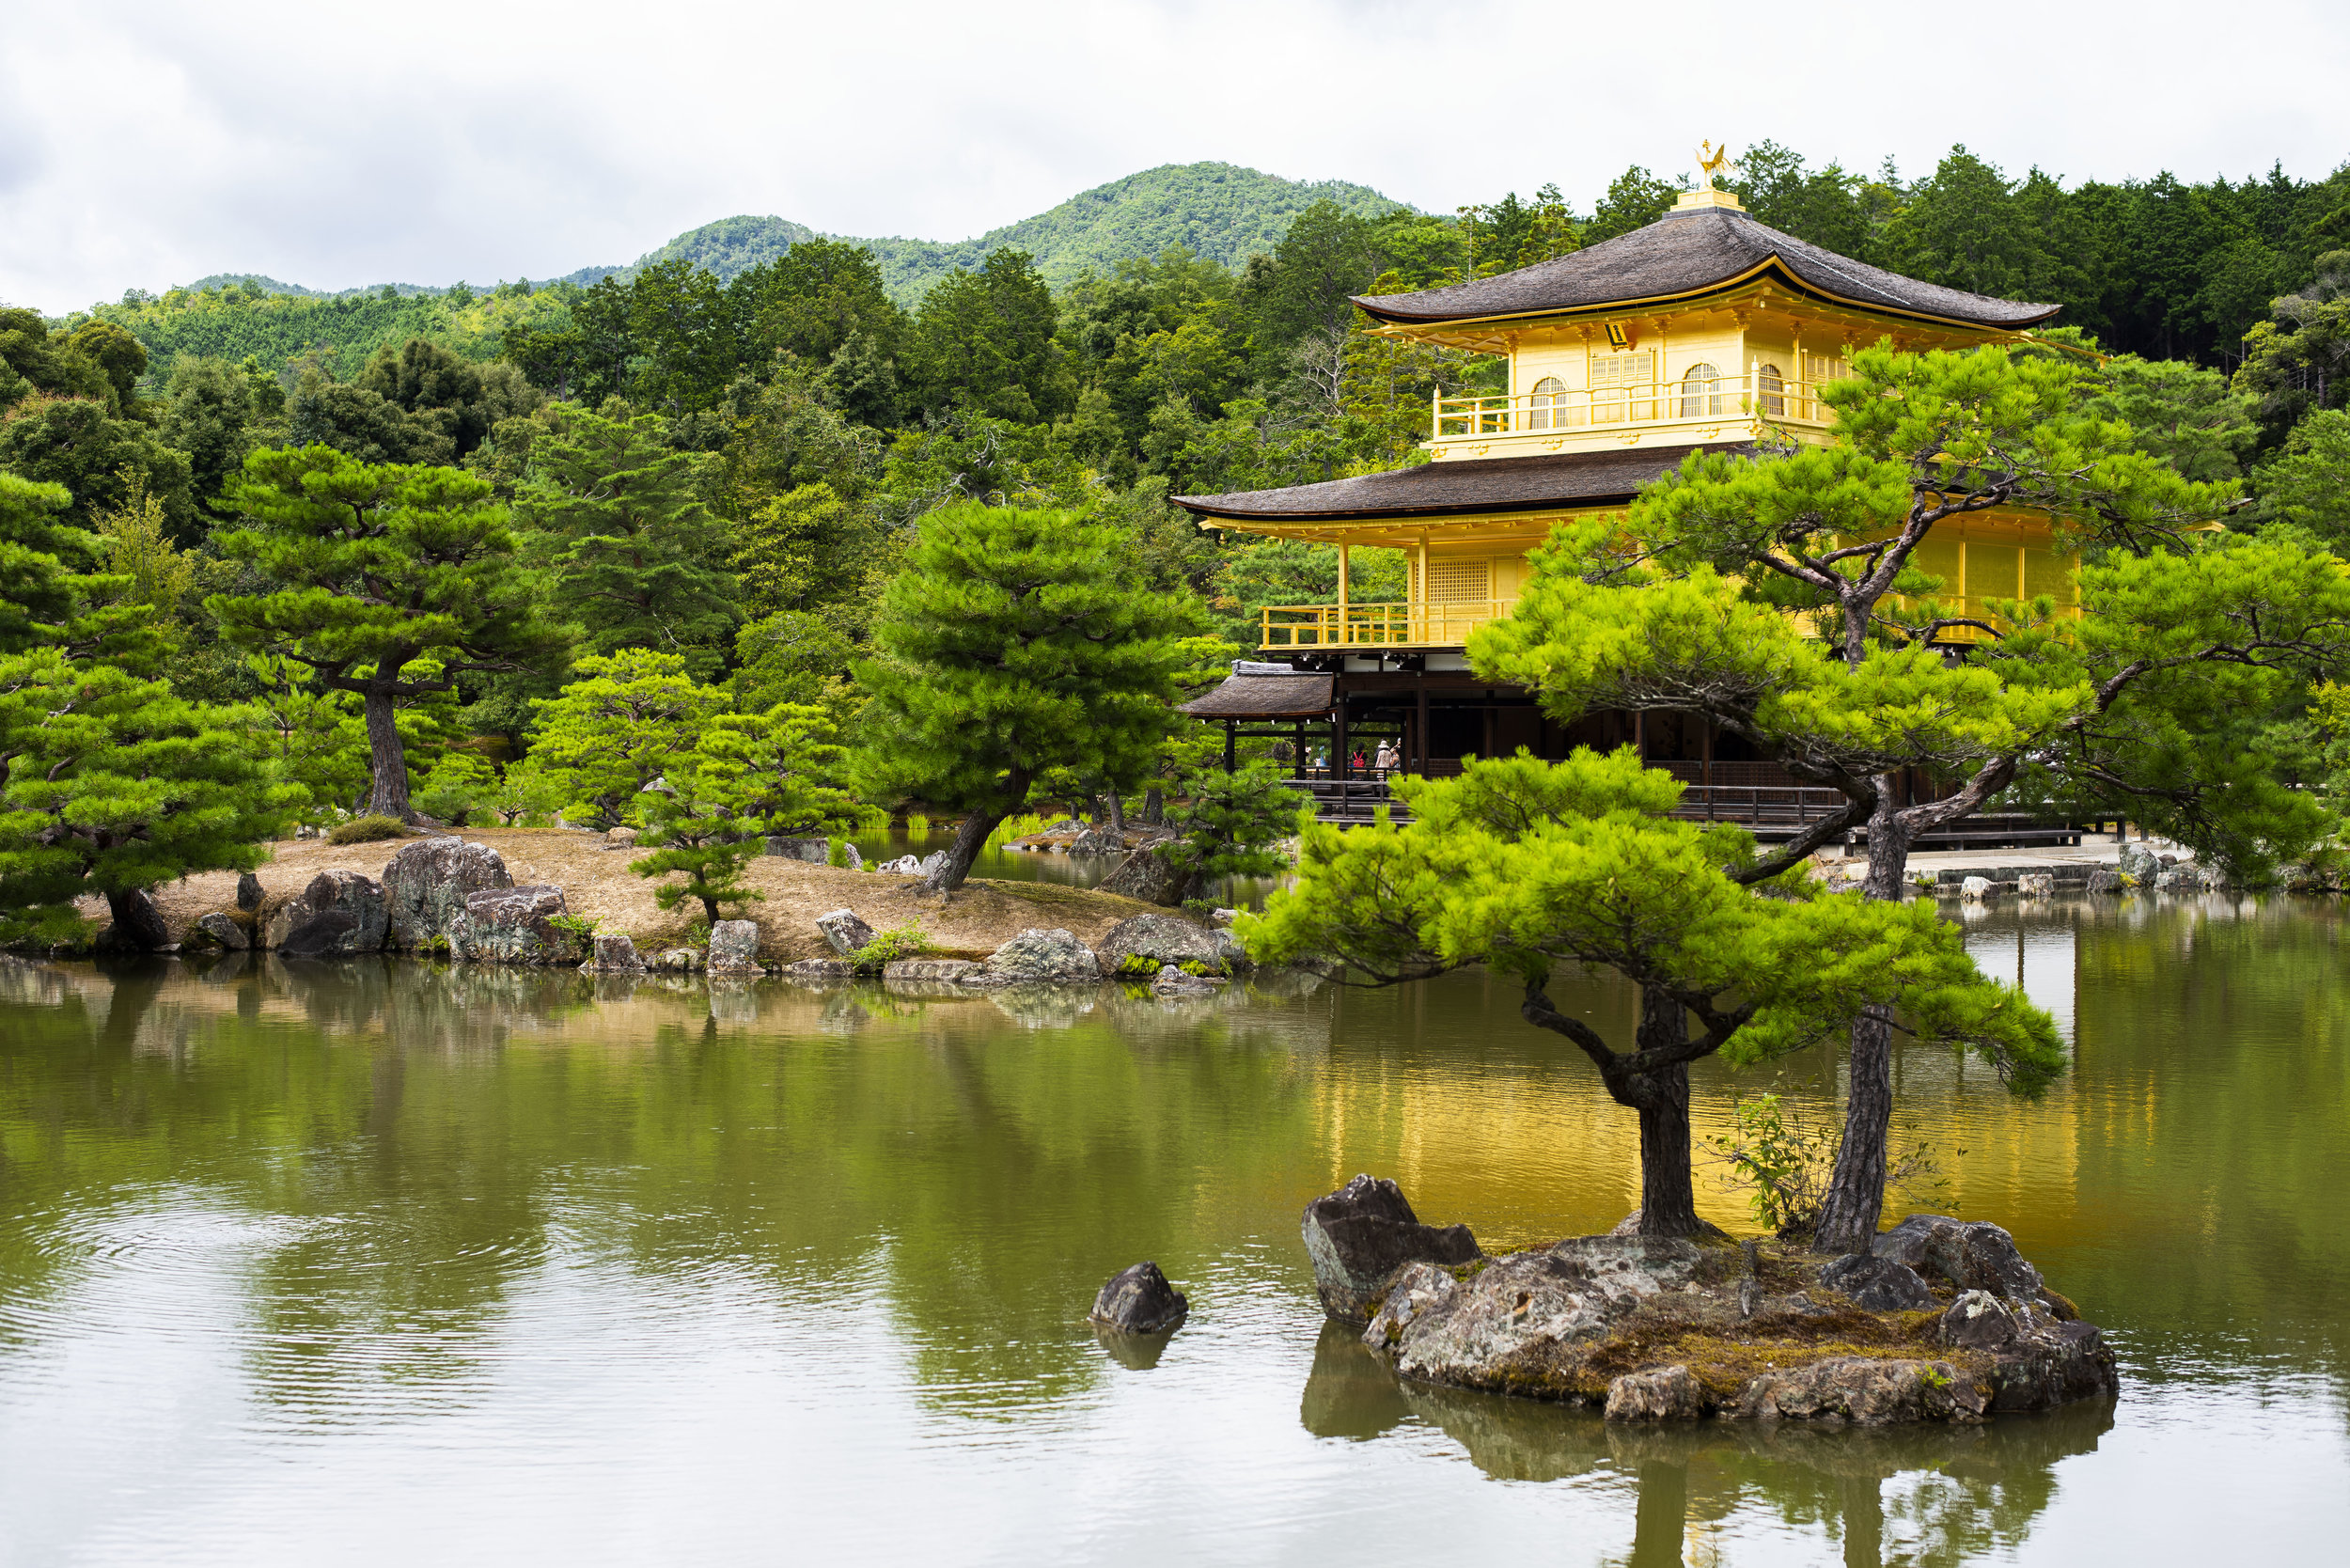 Kinkaku-Ji Temple, known as the Golden Pavilion in Kyoto